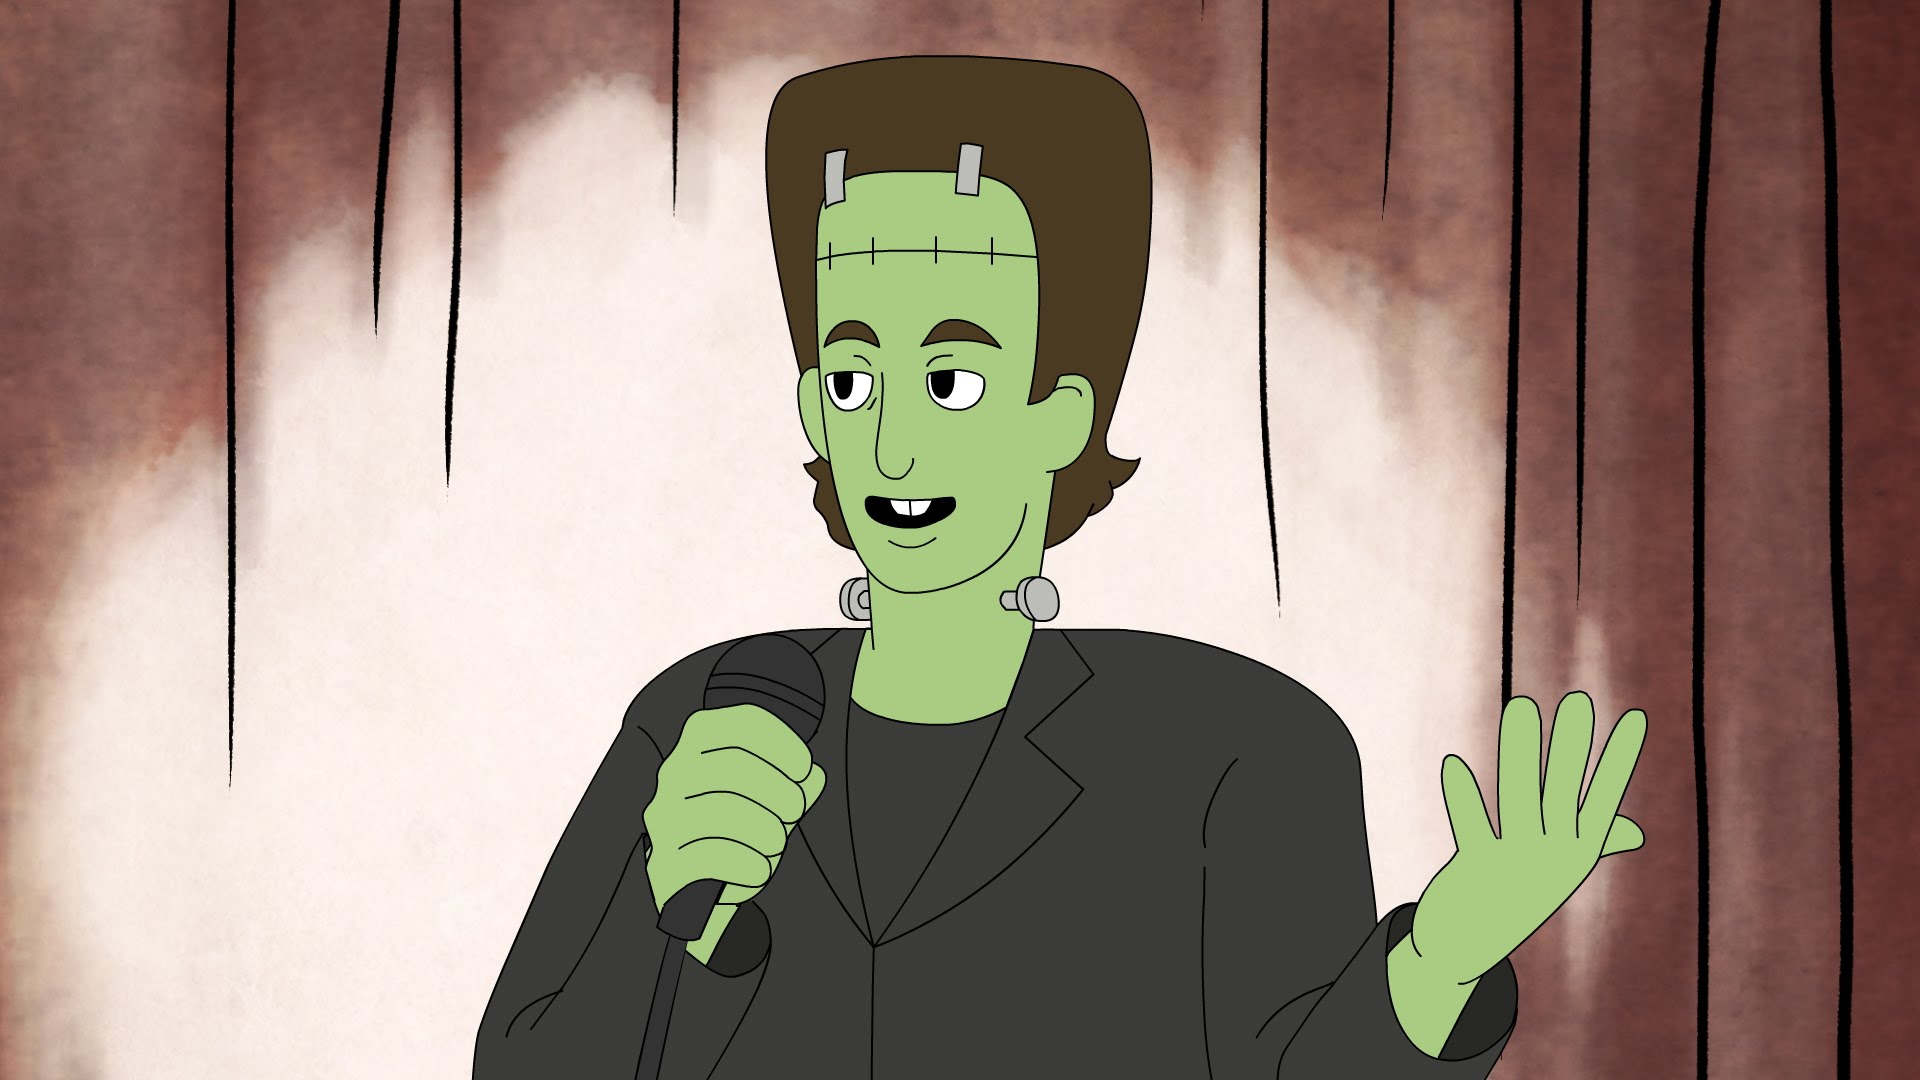 'Frankensteinfeld', An Animated Mashup of 'Seinfeld' and 'Frankenstein' About the Classic Monster Performing Stand-Up